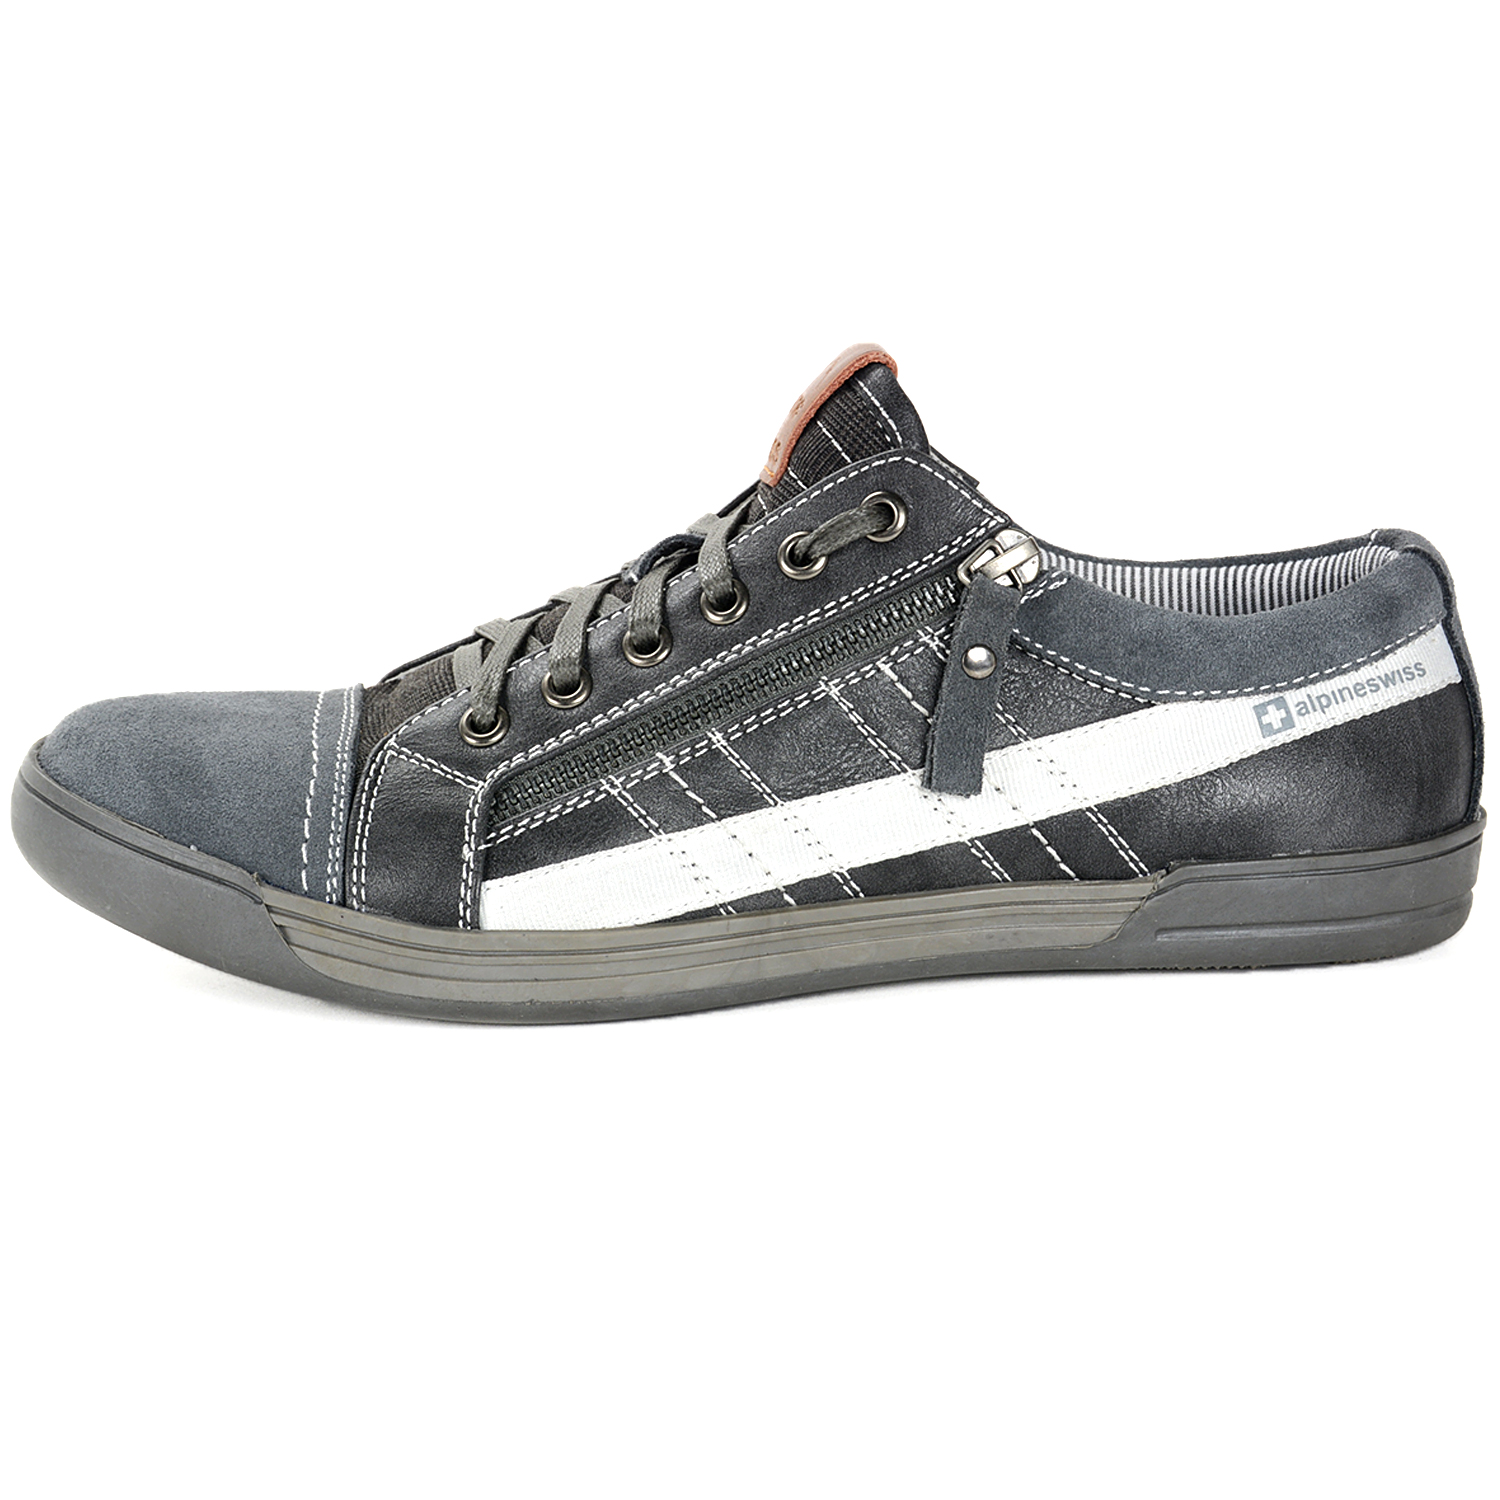 Mens Dress Shoes Buy One Get One Half Off